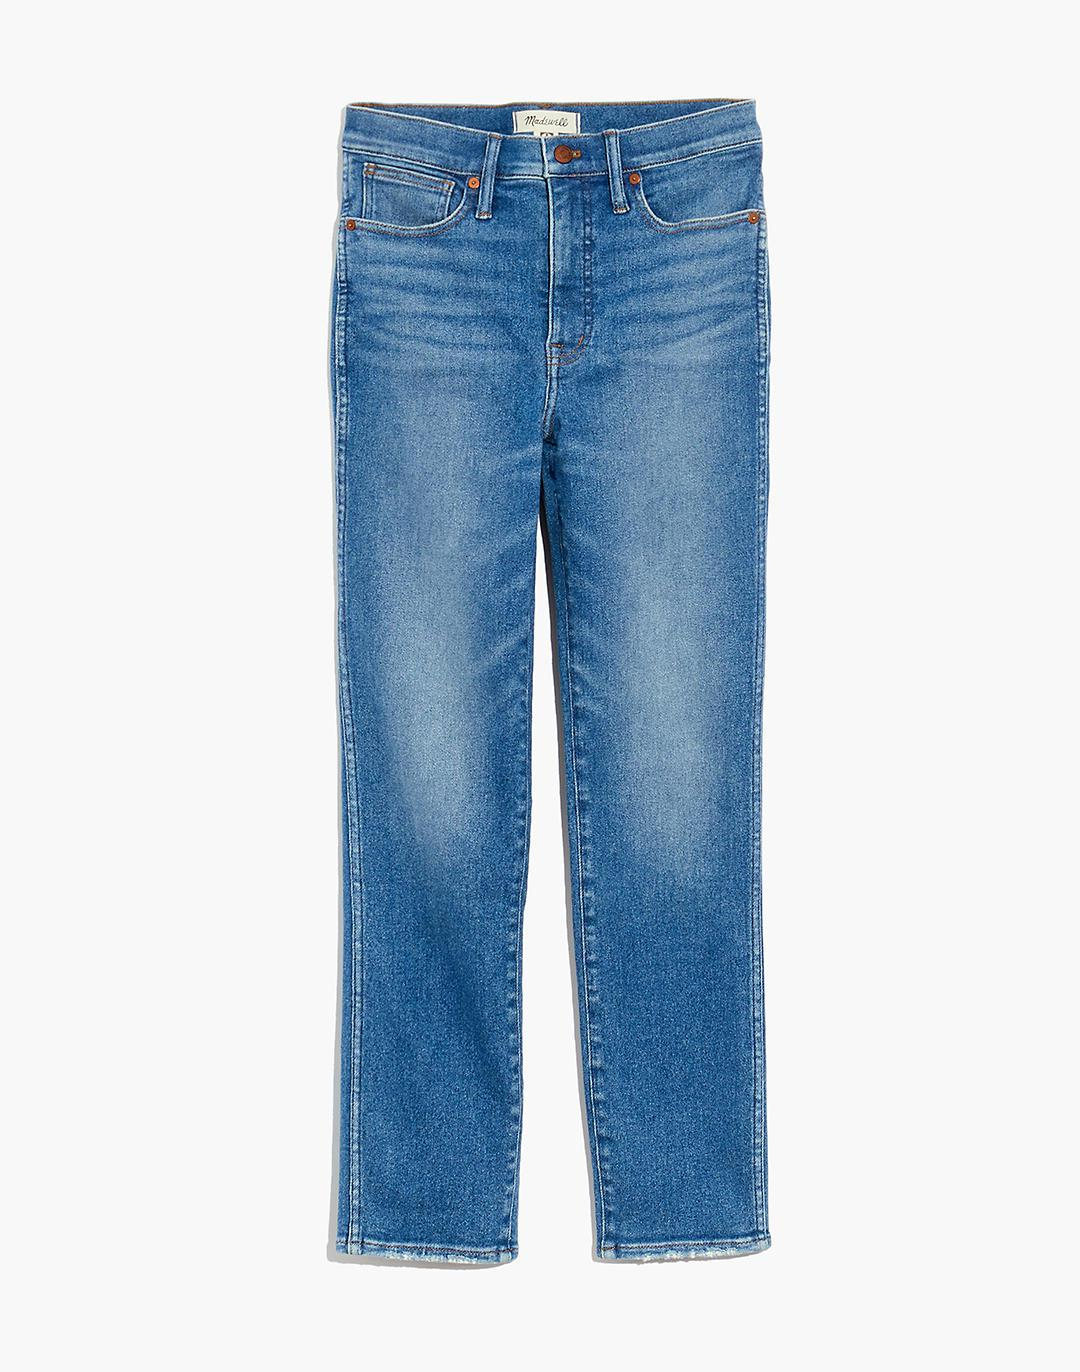 Petite Stovepipe Jeans in Ditmas Wash